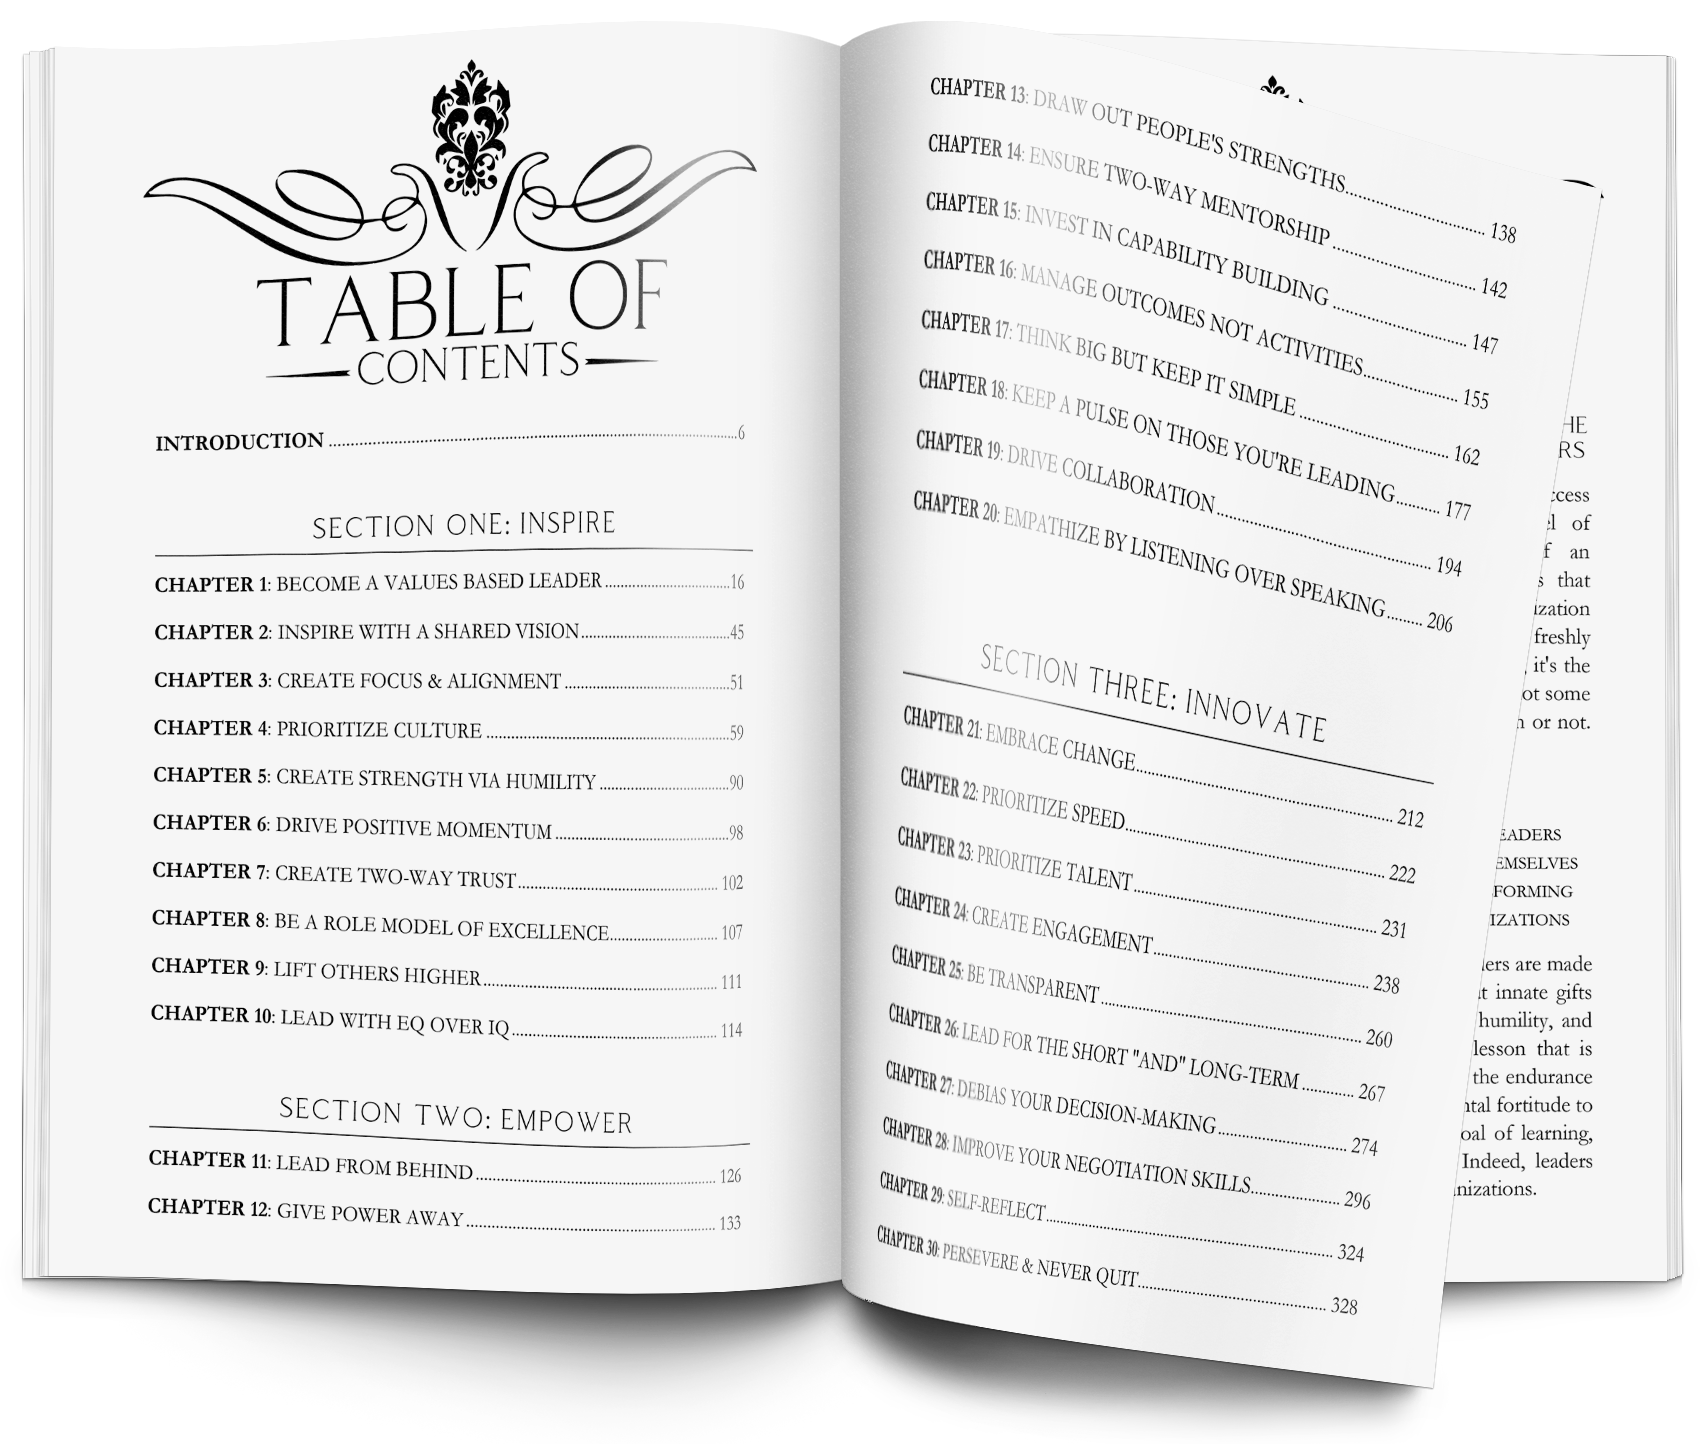 Table of Contents  Exbhibit 3 (+ Click to Enlarge)